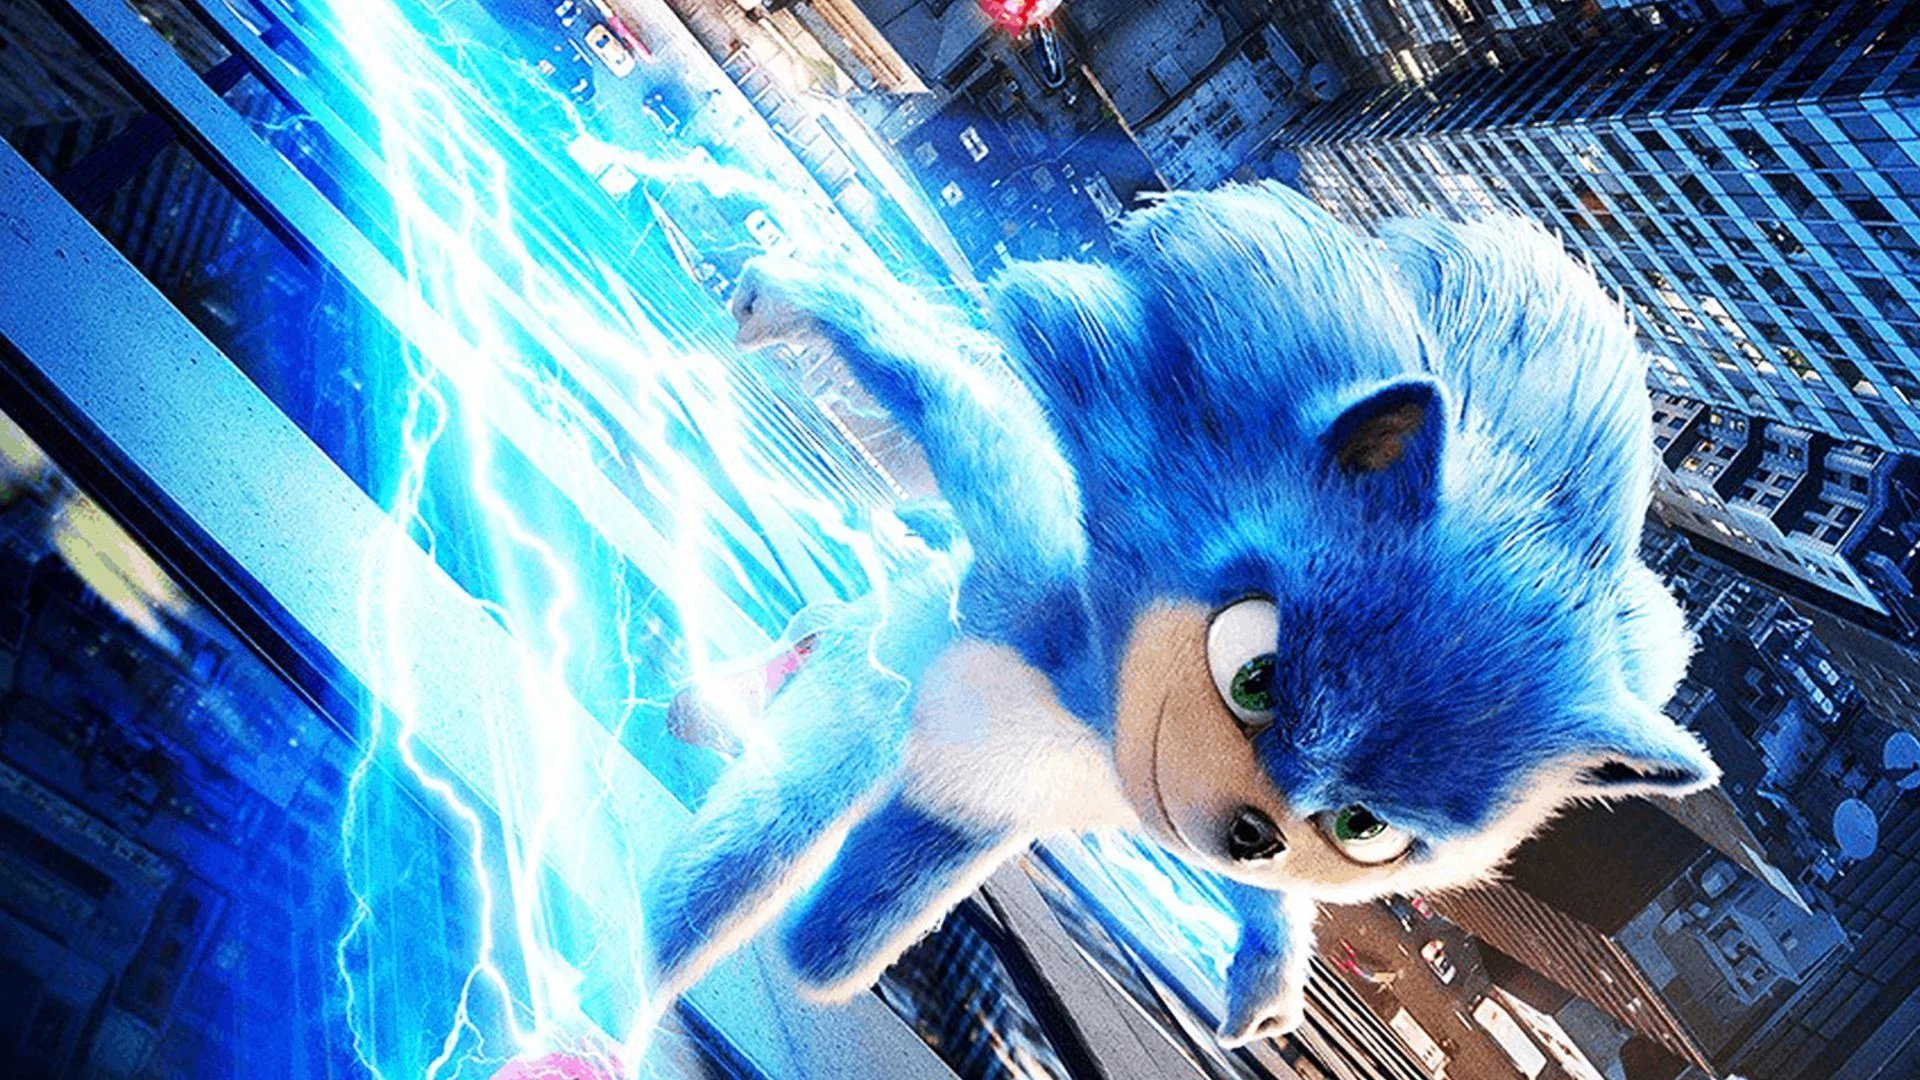 Round Up: Sonic the Hedgehog Movie Reviews Aren't Universally Kind - Push Square